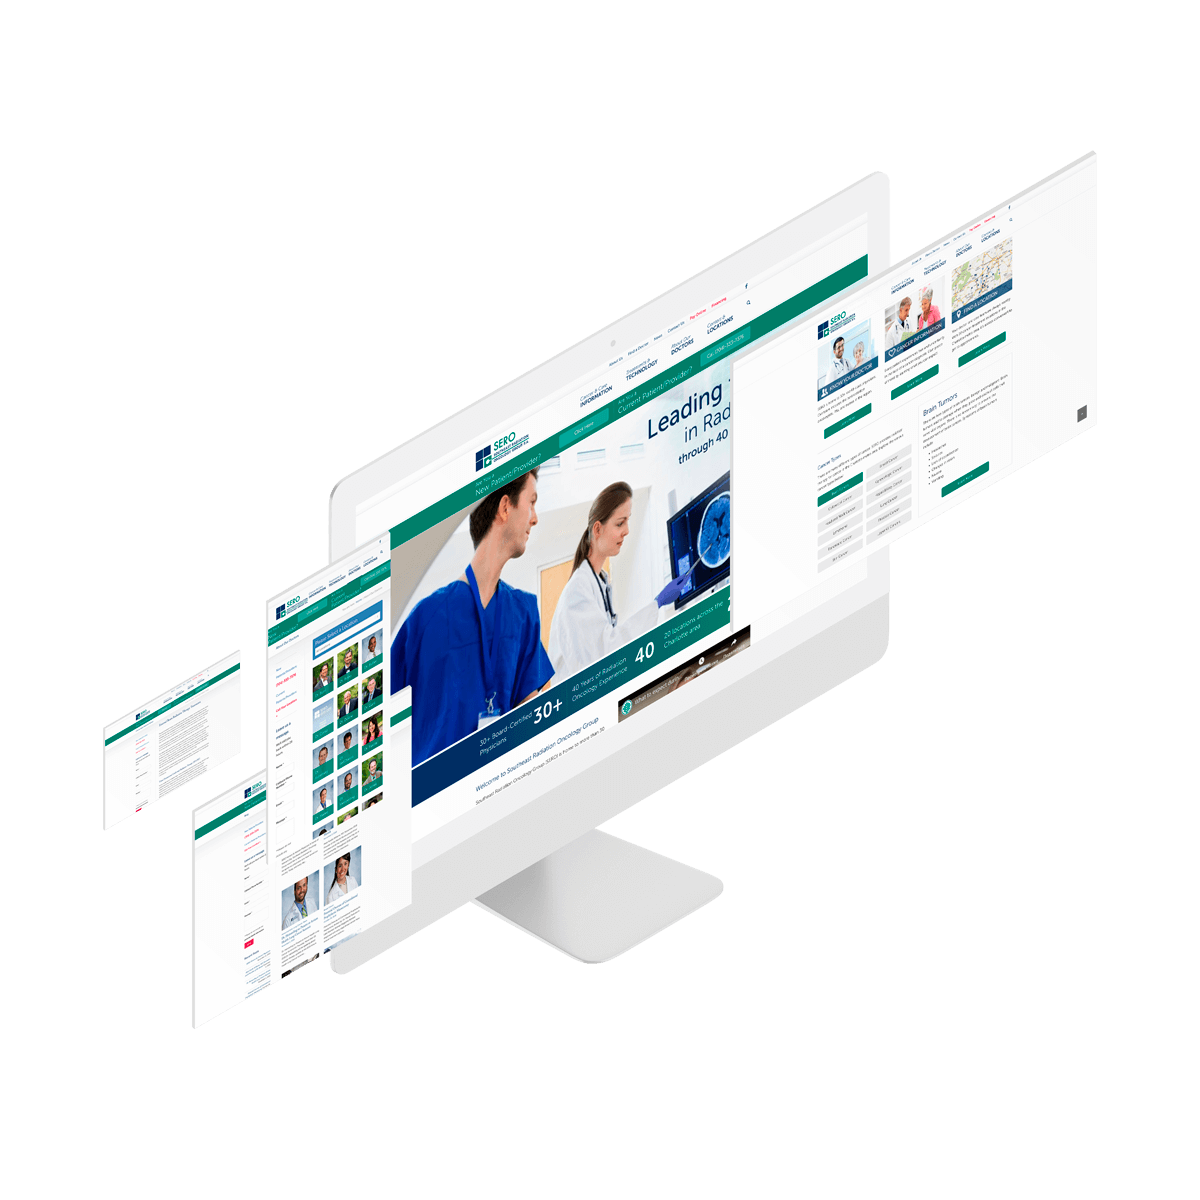 Screens with white and green colors oncology website interface